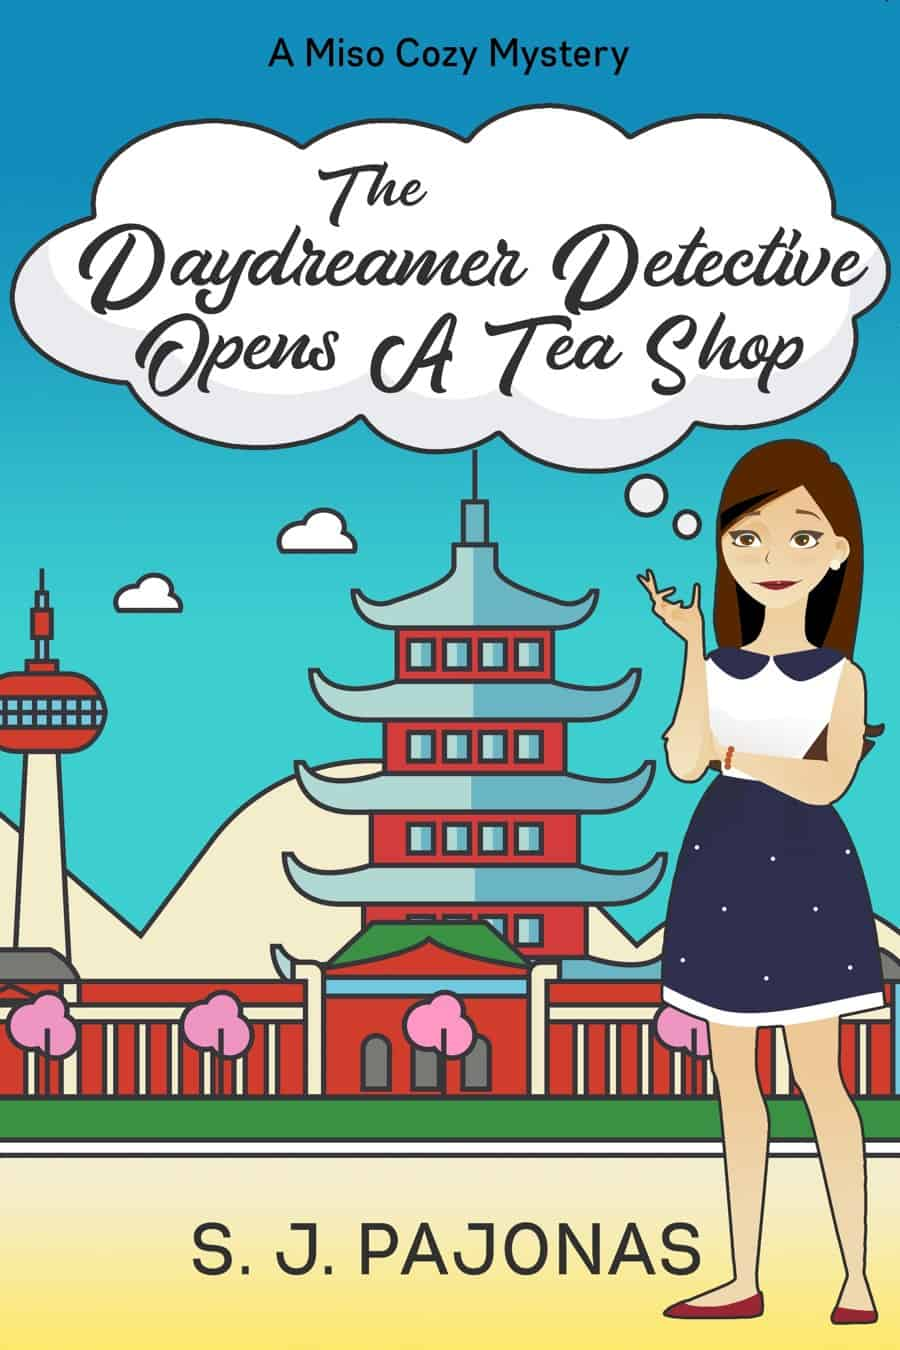 THE DAYDREAMER DETECTIVE OPENS A TEA SHOP, the third book in the Miso Cozy Mysteries series, is now available and discounted at $2.99 until March 12.